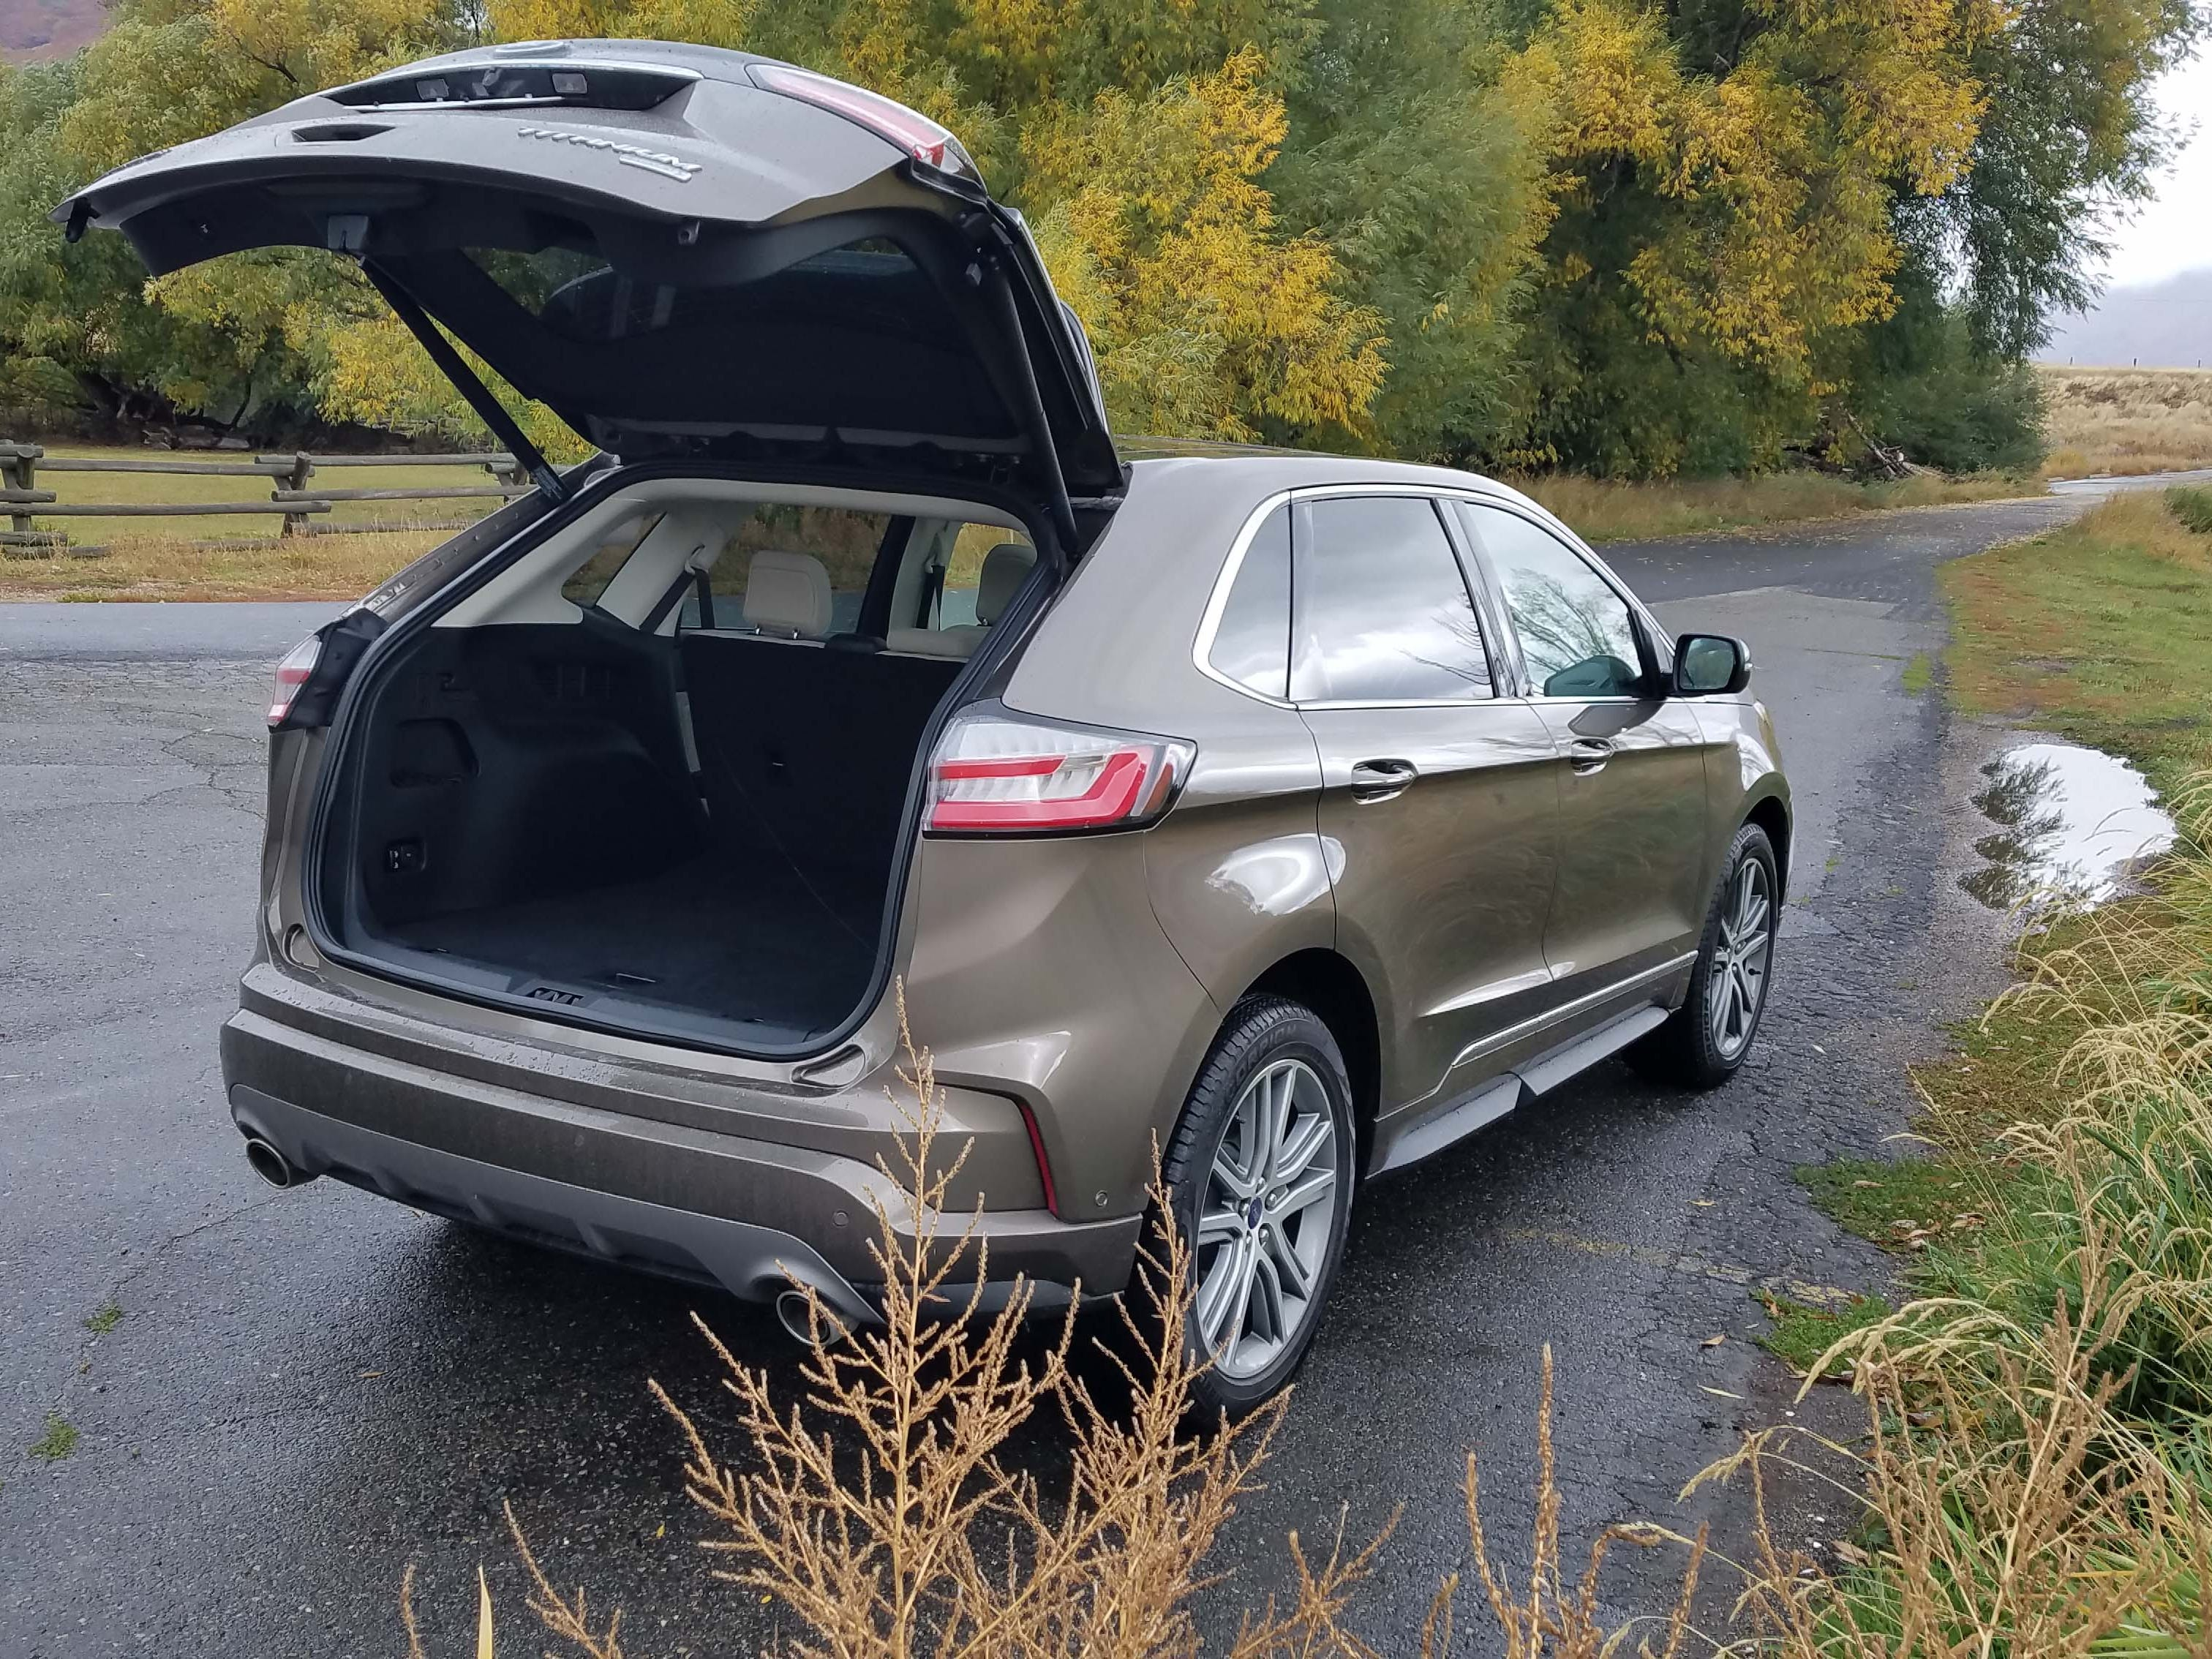 The 2019 Ford Edge continues Ford's innovative tradition with a kick-open rear hatch.